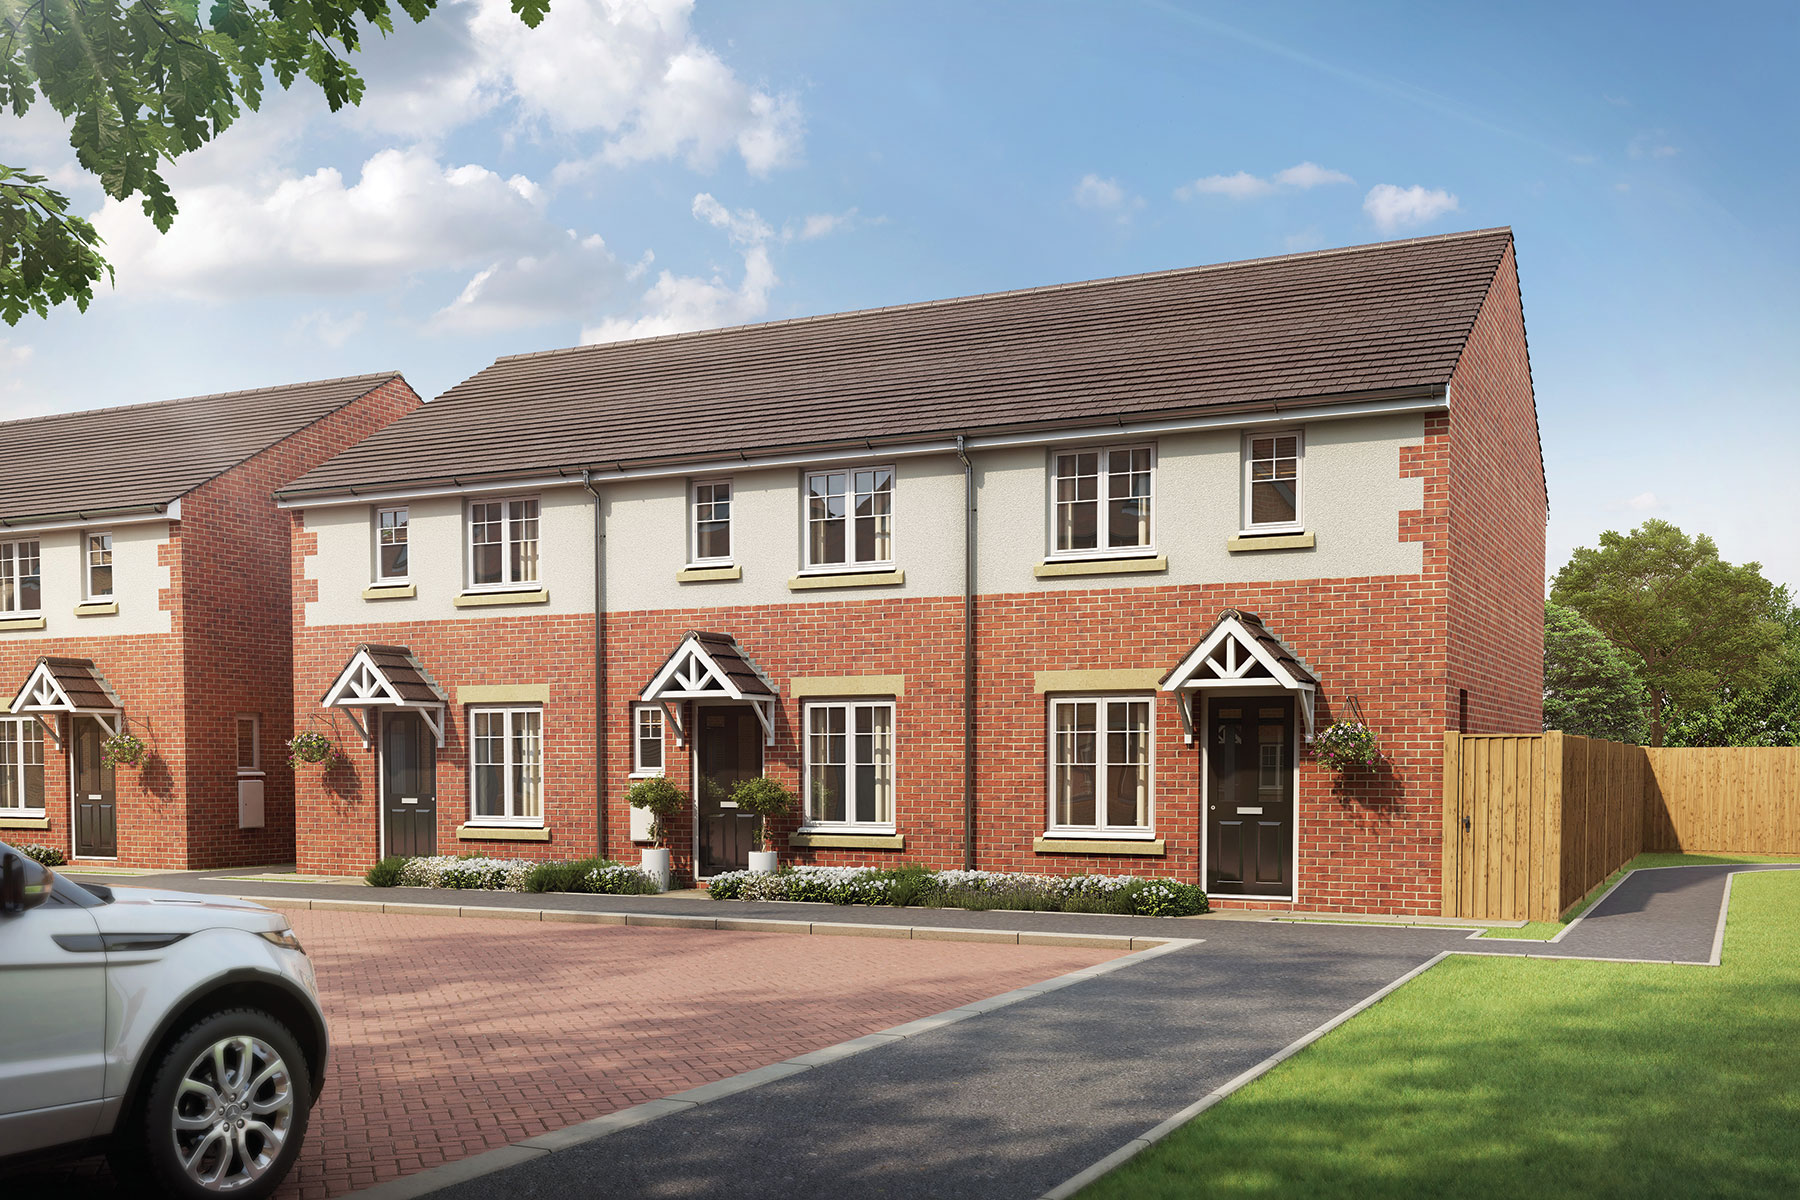 Valley rise taylor wimpey for Taylor made homes